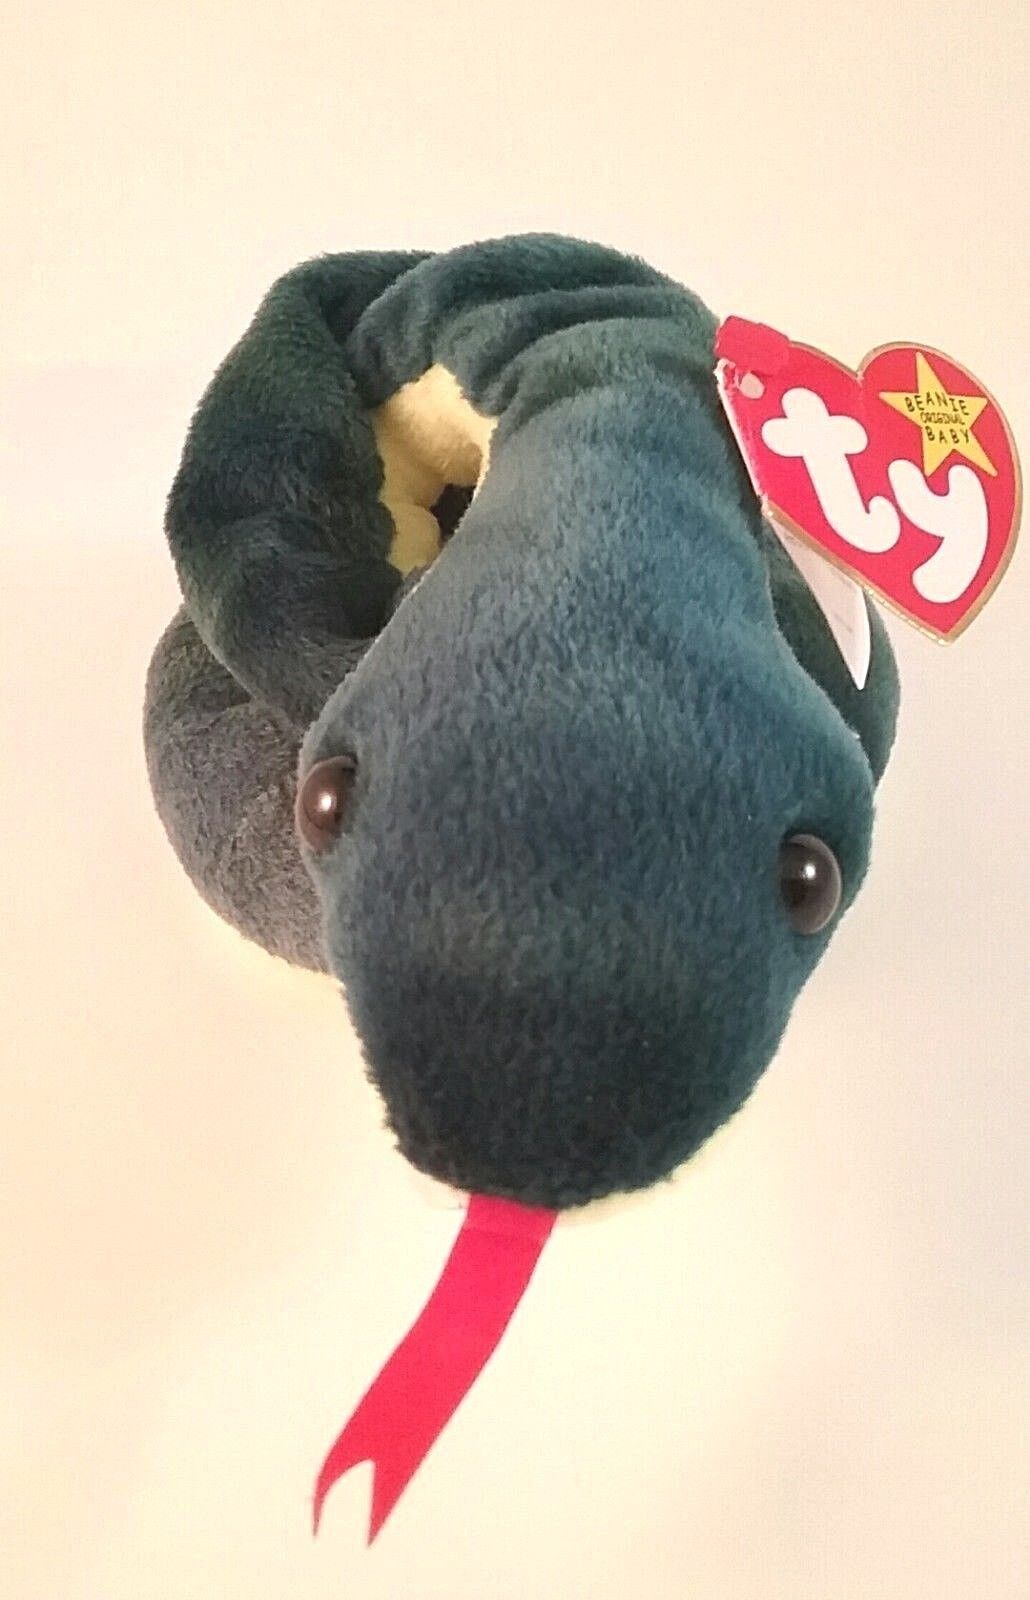 Ty Beanie Baby HISSY HISSY HISSY  the Snake Retired  with Tag Errors Collectible 1997 94dfc4